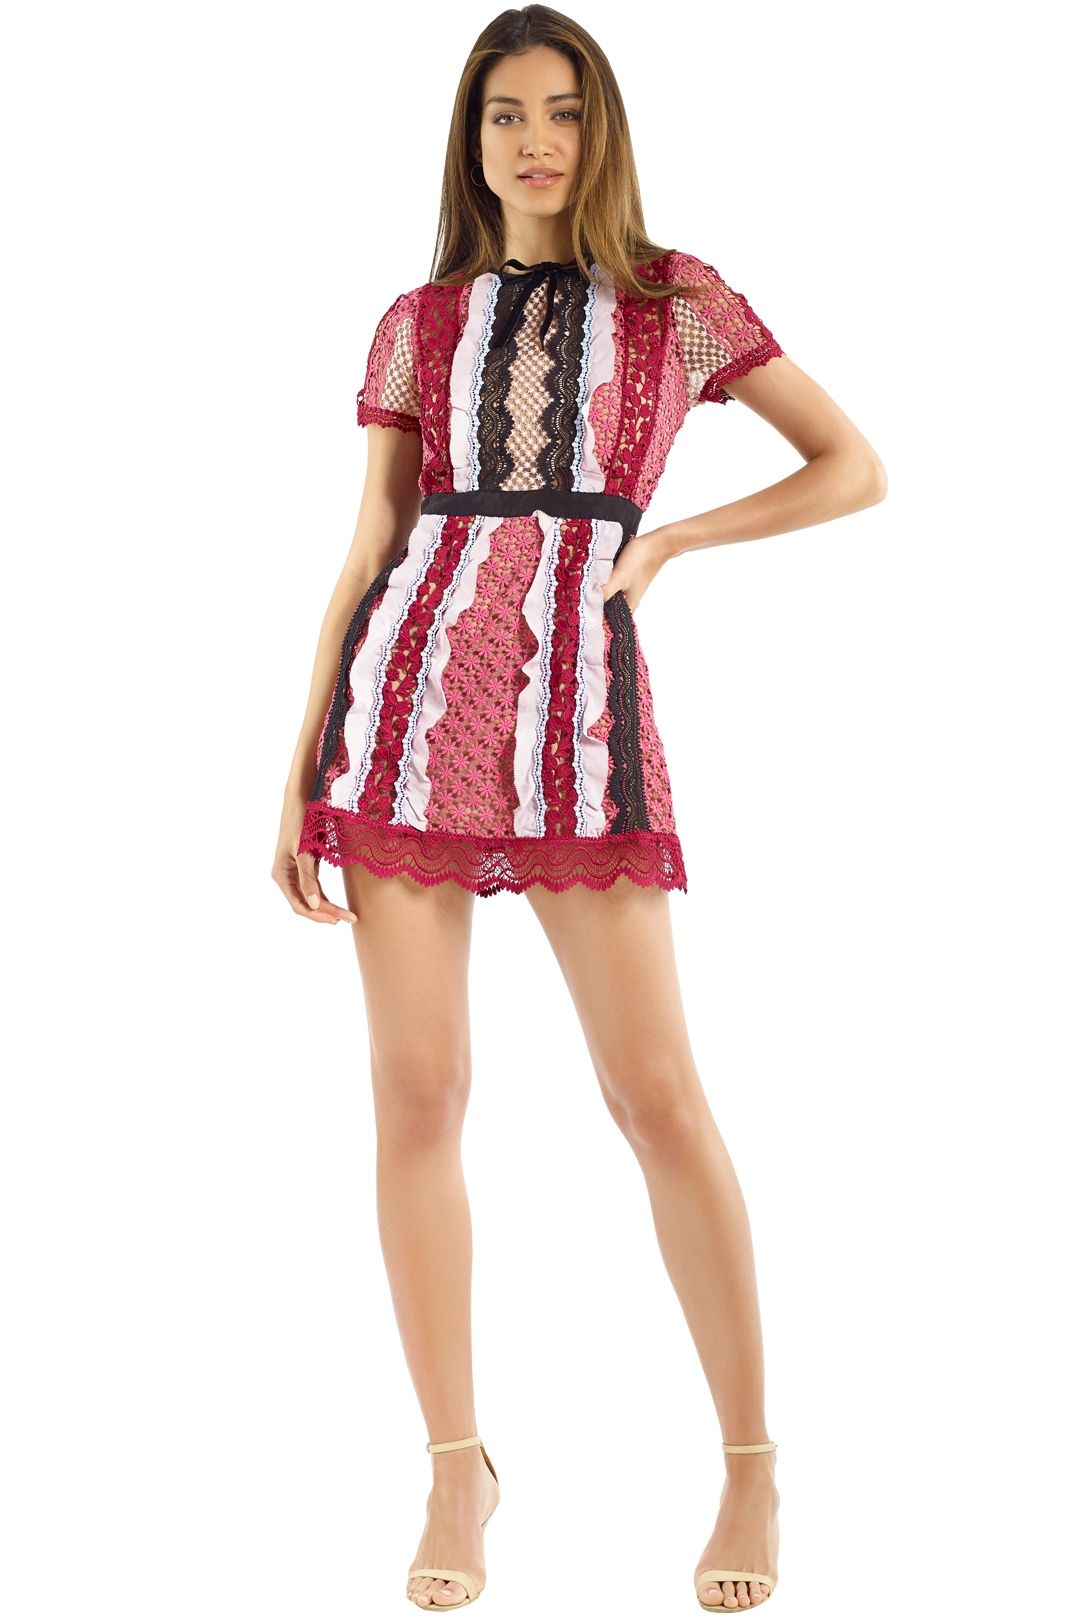 Self Portrait - Panelled Bellis Lace Trim Mini Dress - Pink Multi - Front